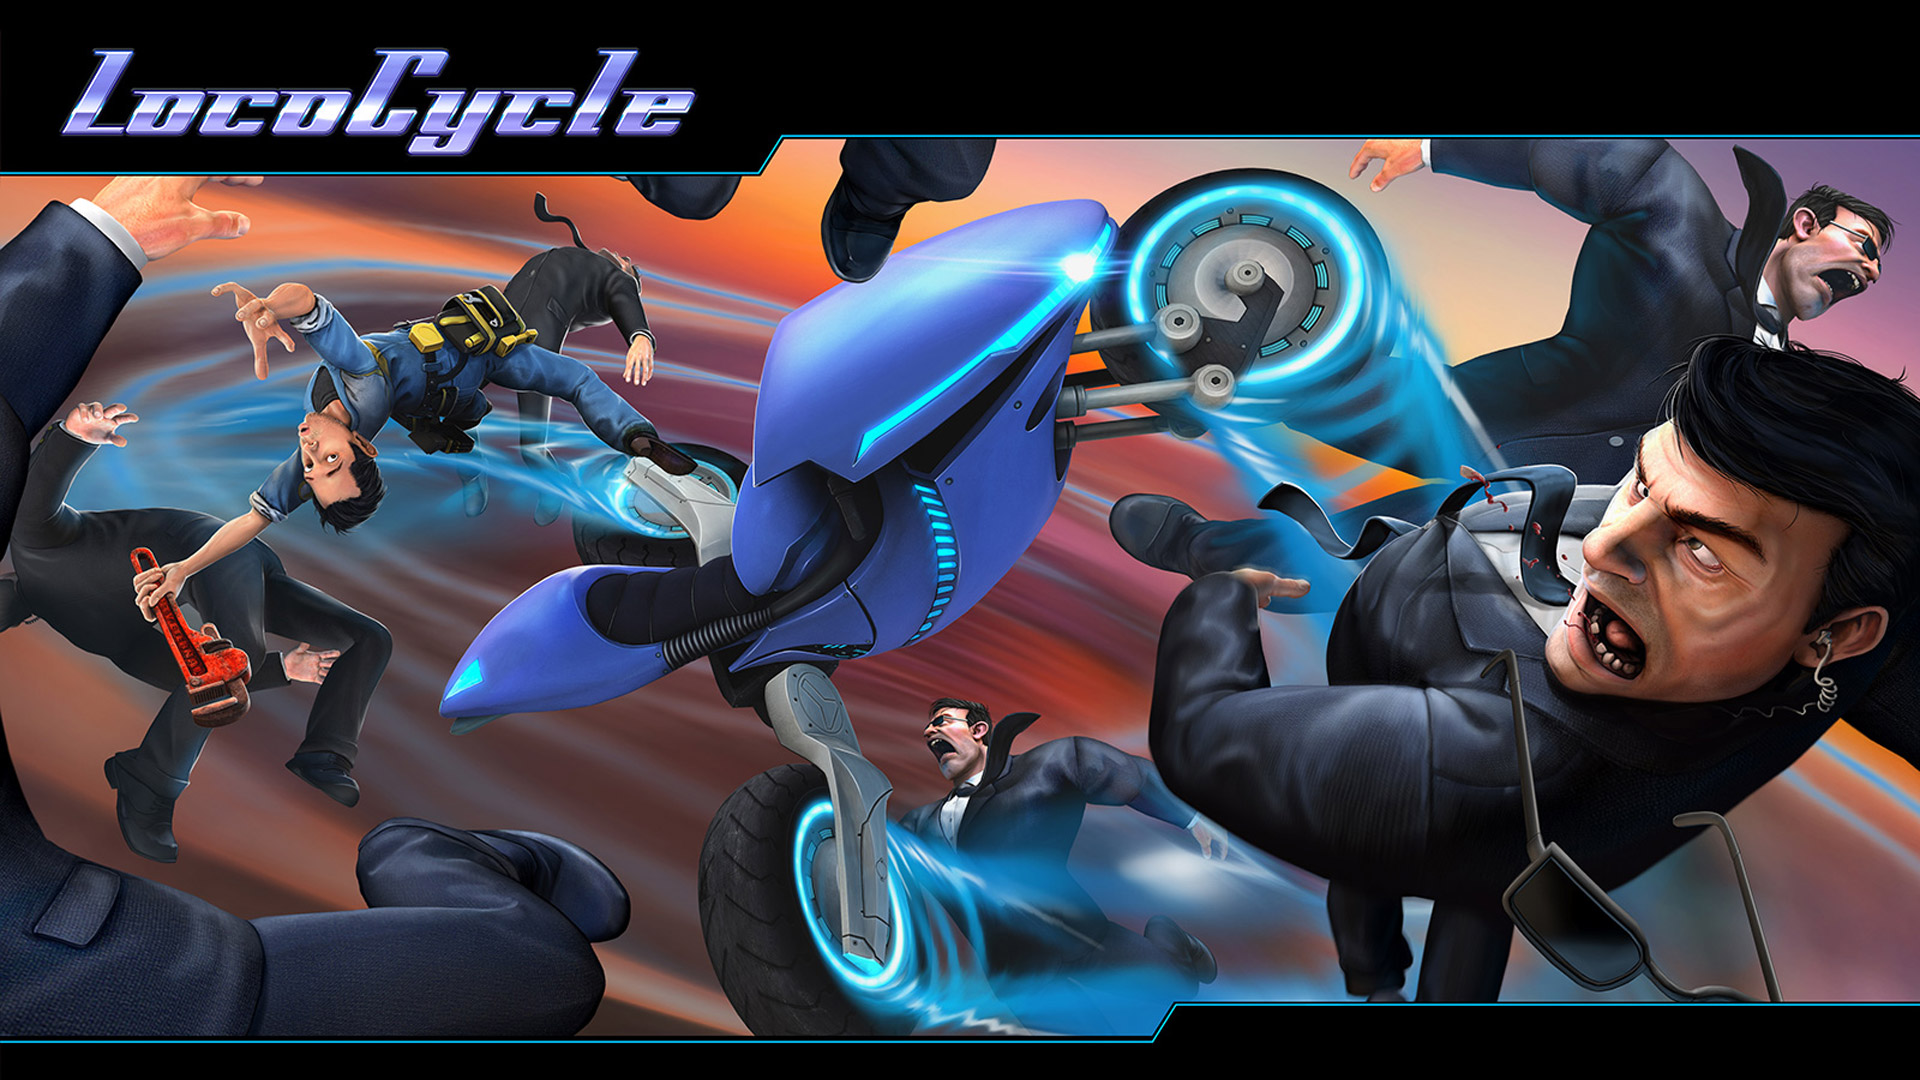 LocoCycle Wallpaper in 1920x1080